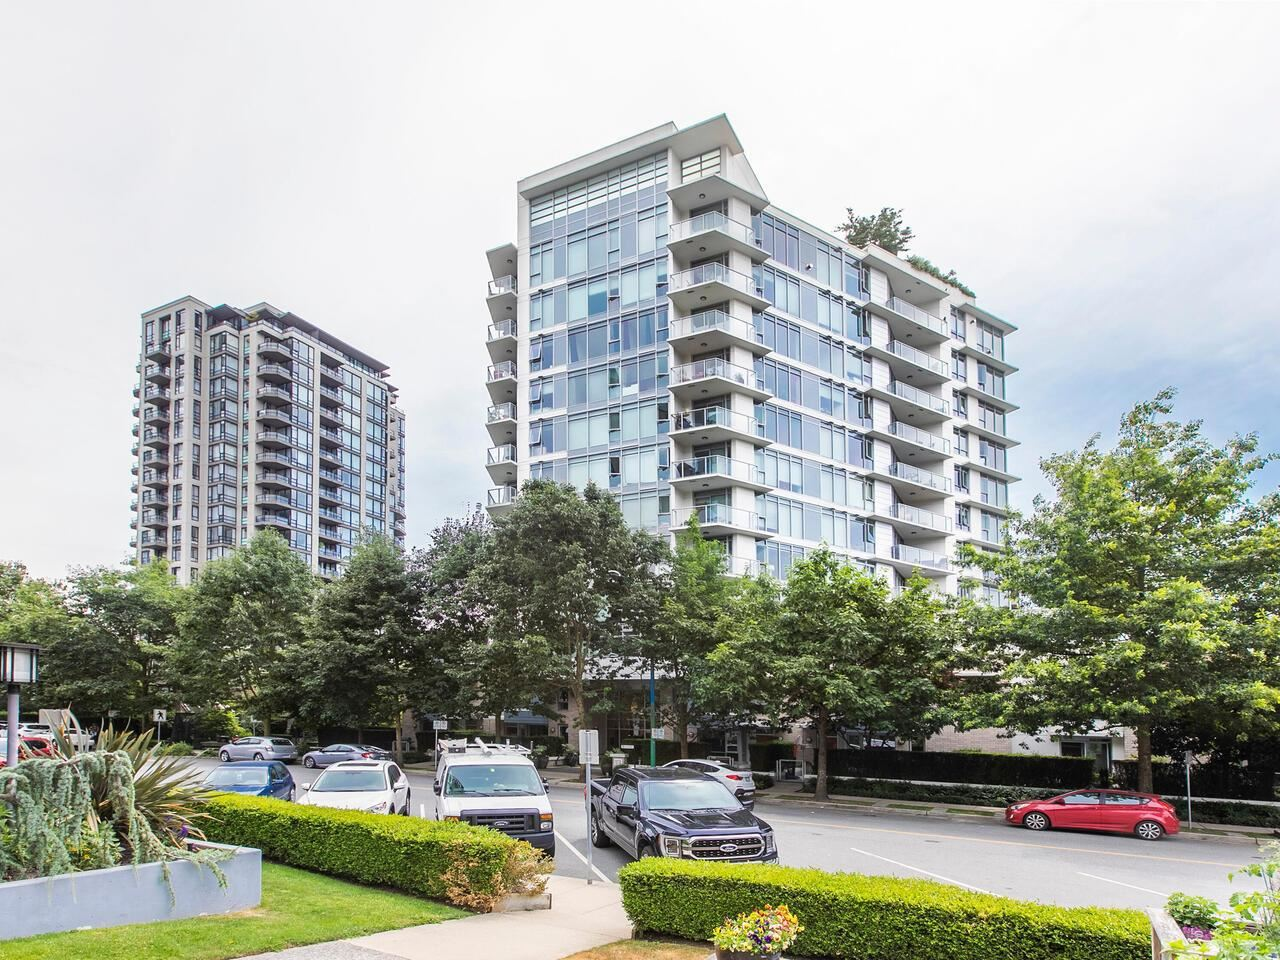 207 175 W 2ND STREET - Lower Lonsdale Apartment/Condo for sale, 1 Bedroom (R2600215) - #1